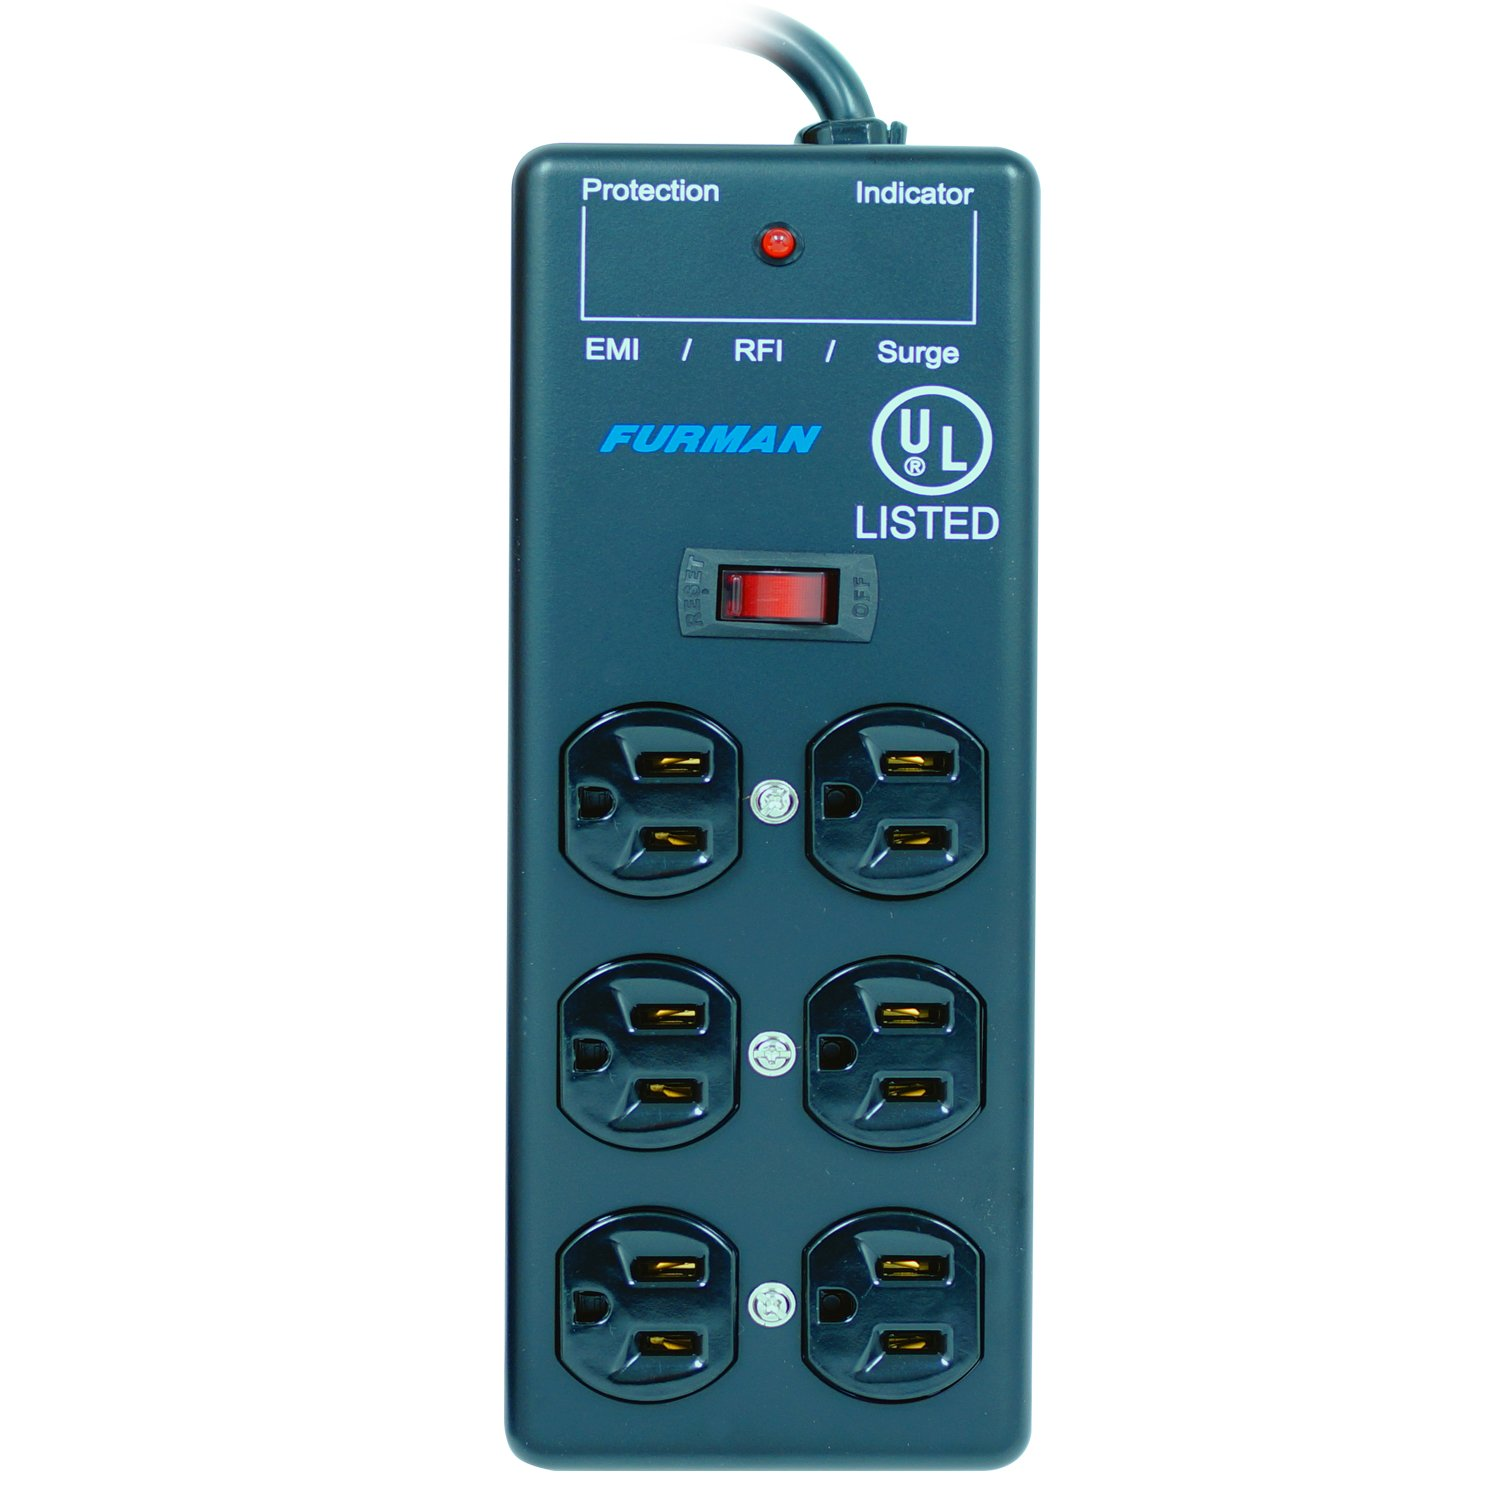 Furman SS-6B 15A AC Surge Strip 6 Outlet 2X3 Block, Metal Chassis, 15 Ft Cord